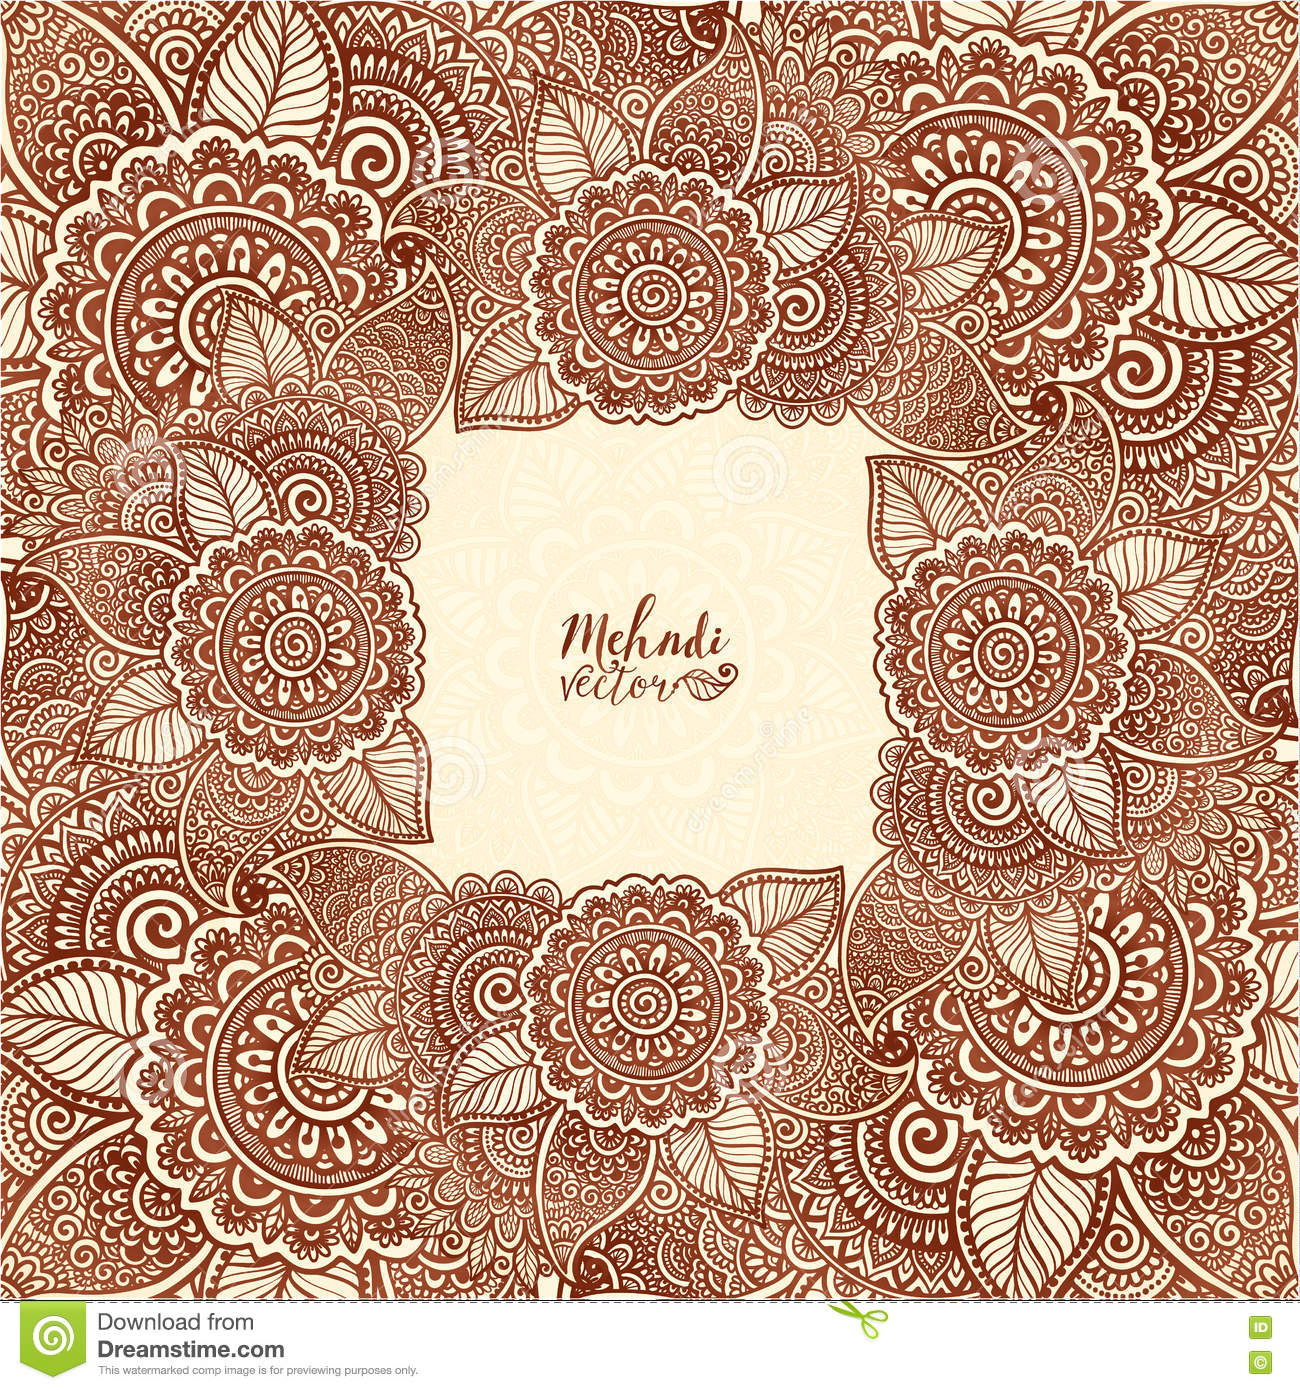 Henna Tattoo Colors: Brown Henna Colors Vector Floral Square Frame In Indian